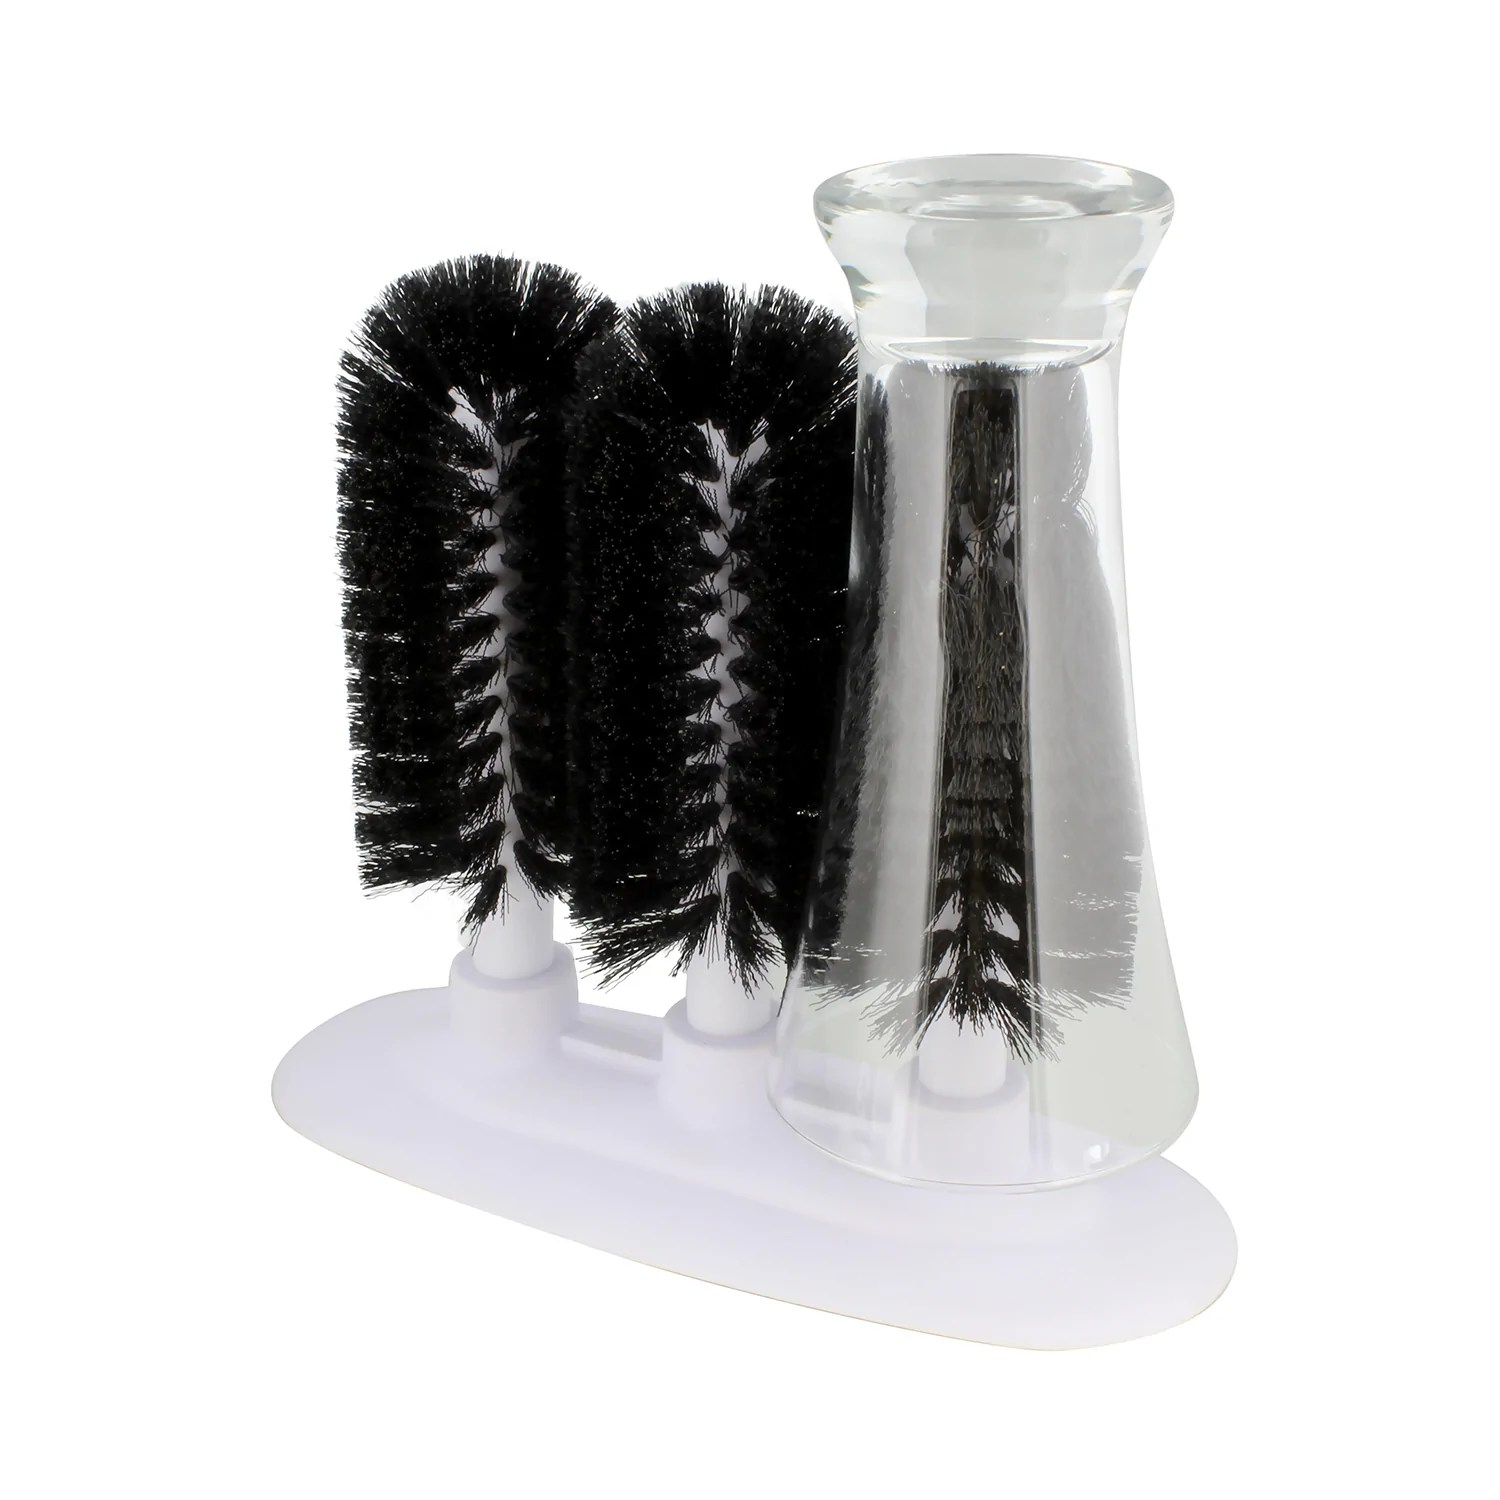 Countertop Glass Washer Glass Cleaning Brush 3 Brush Glass Washer Glass Rinser Cup